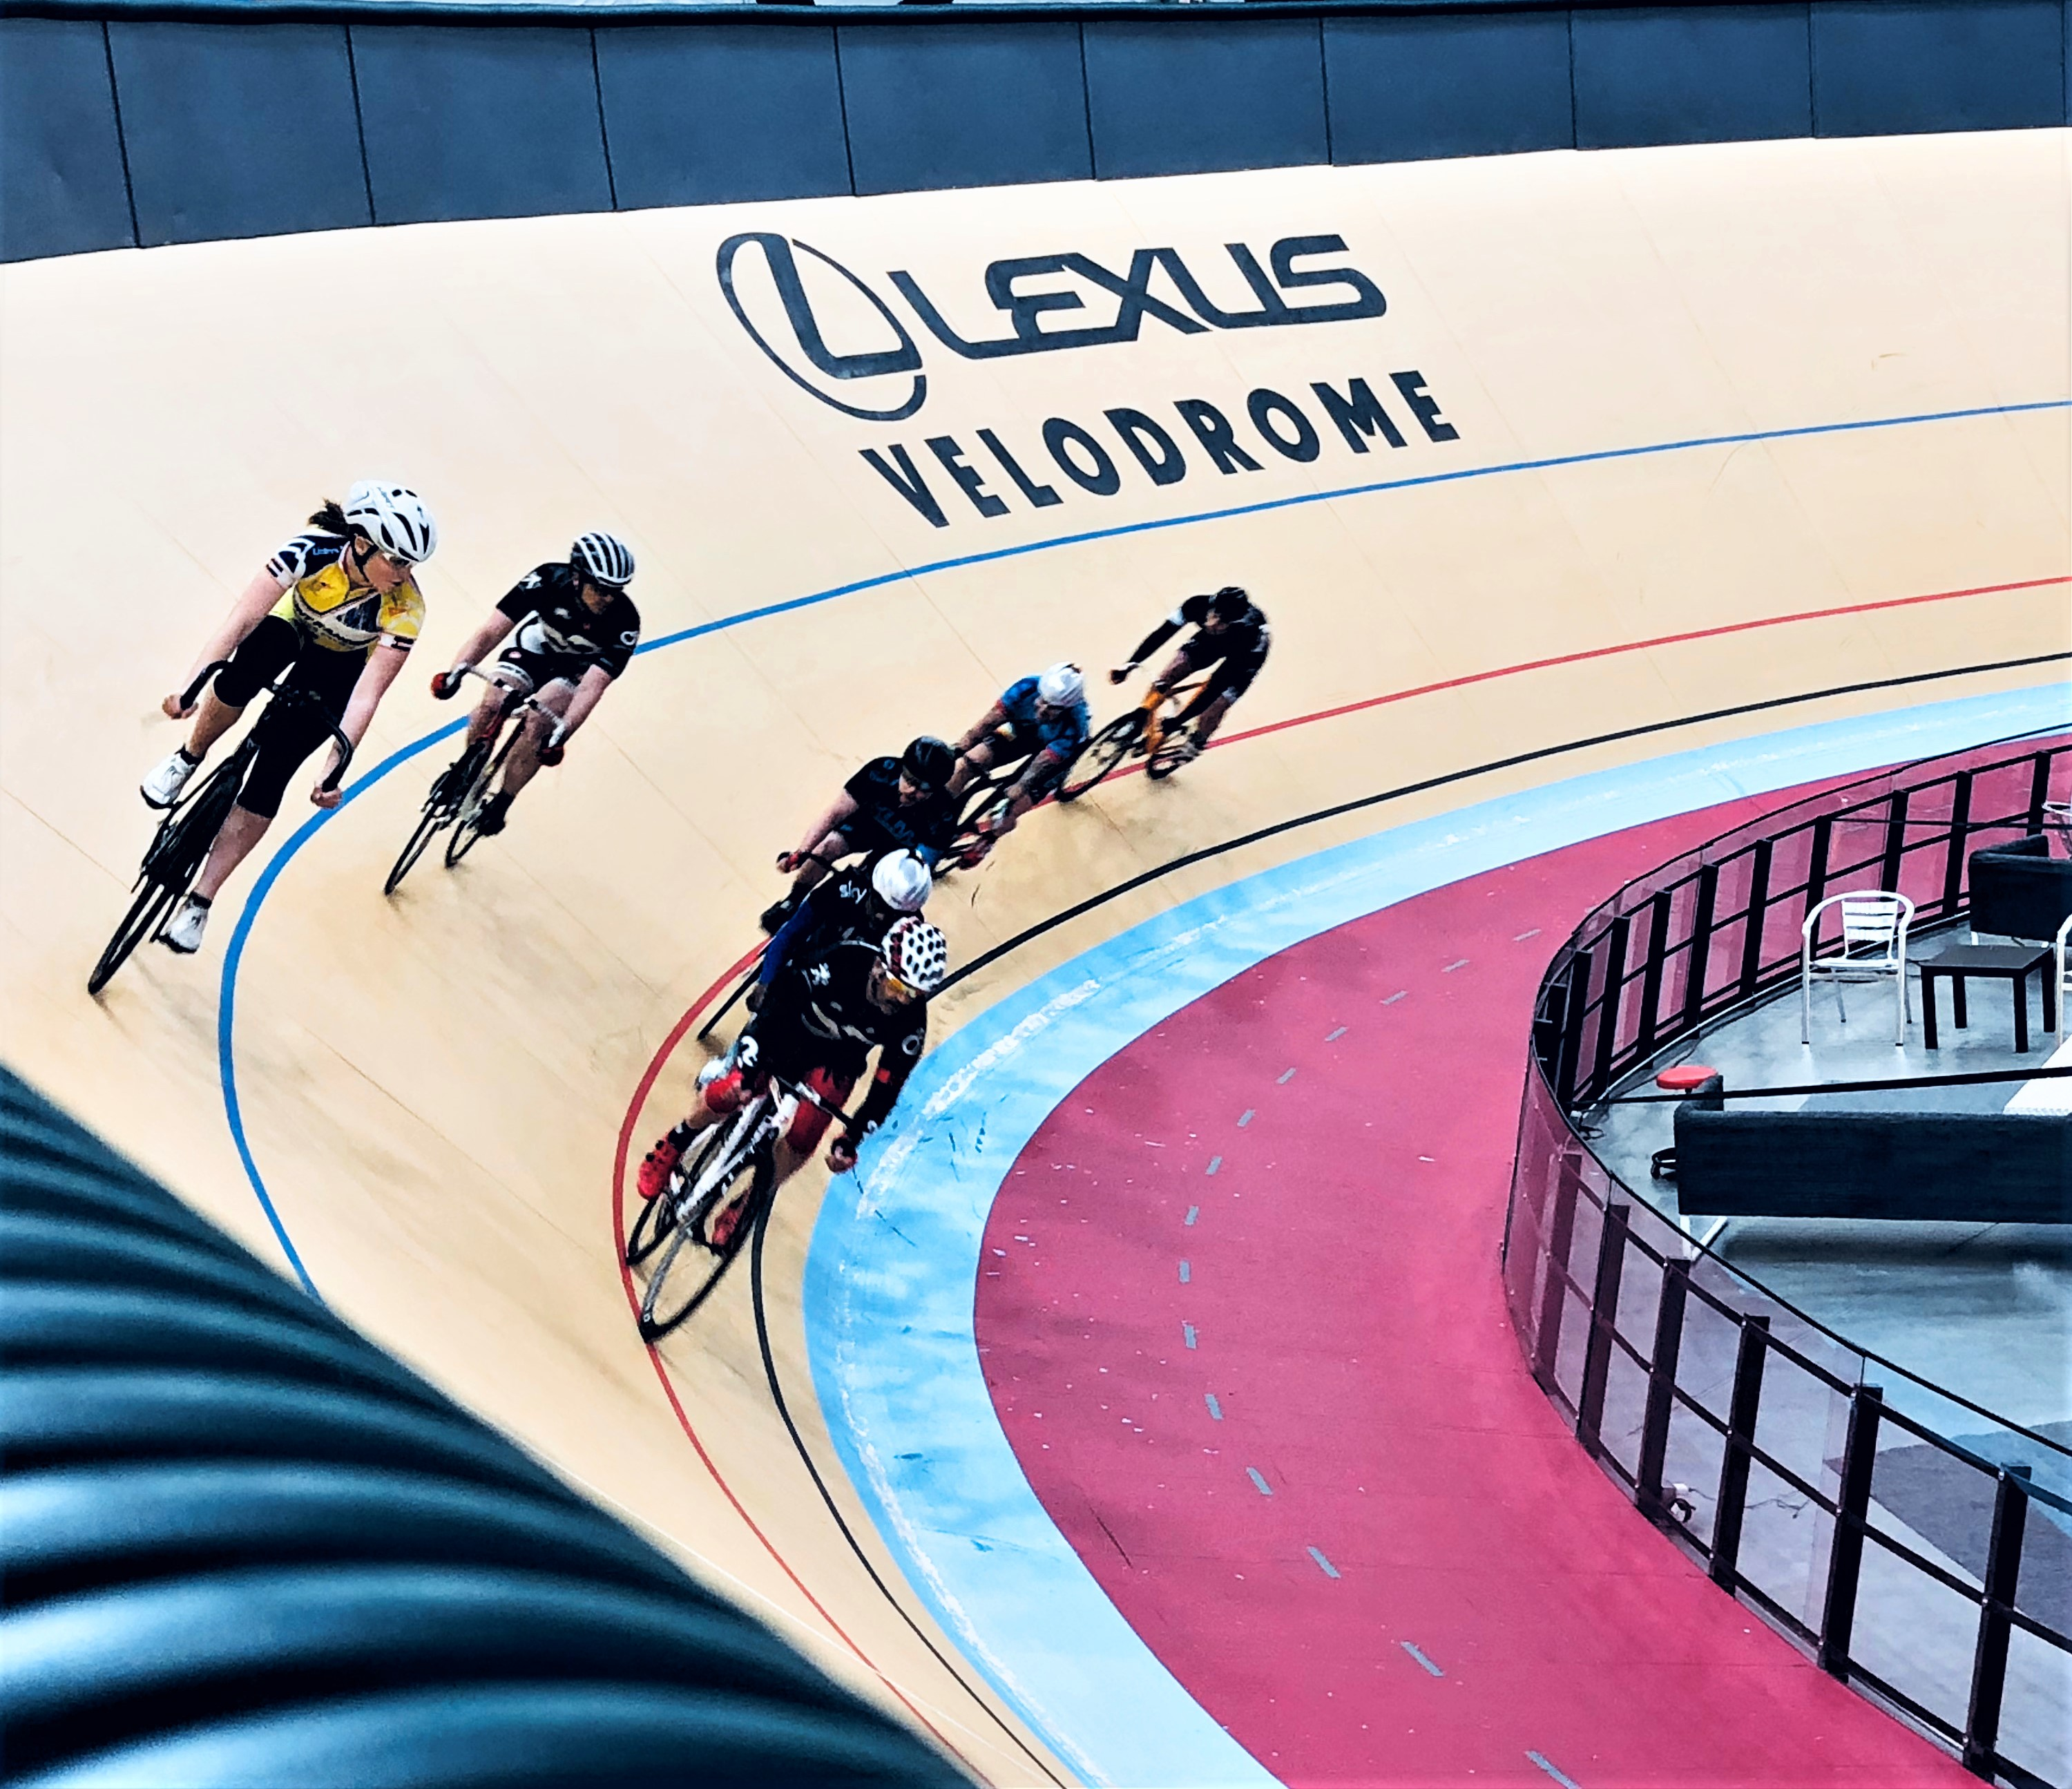 Seven cyclers racing at the Lexus Velodrome cycling track.